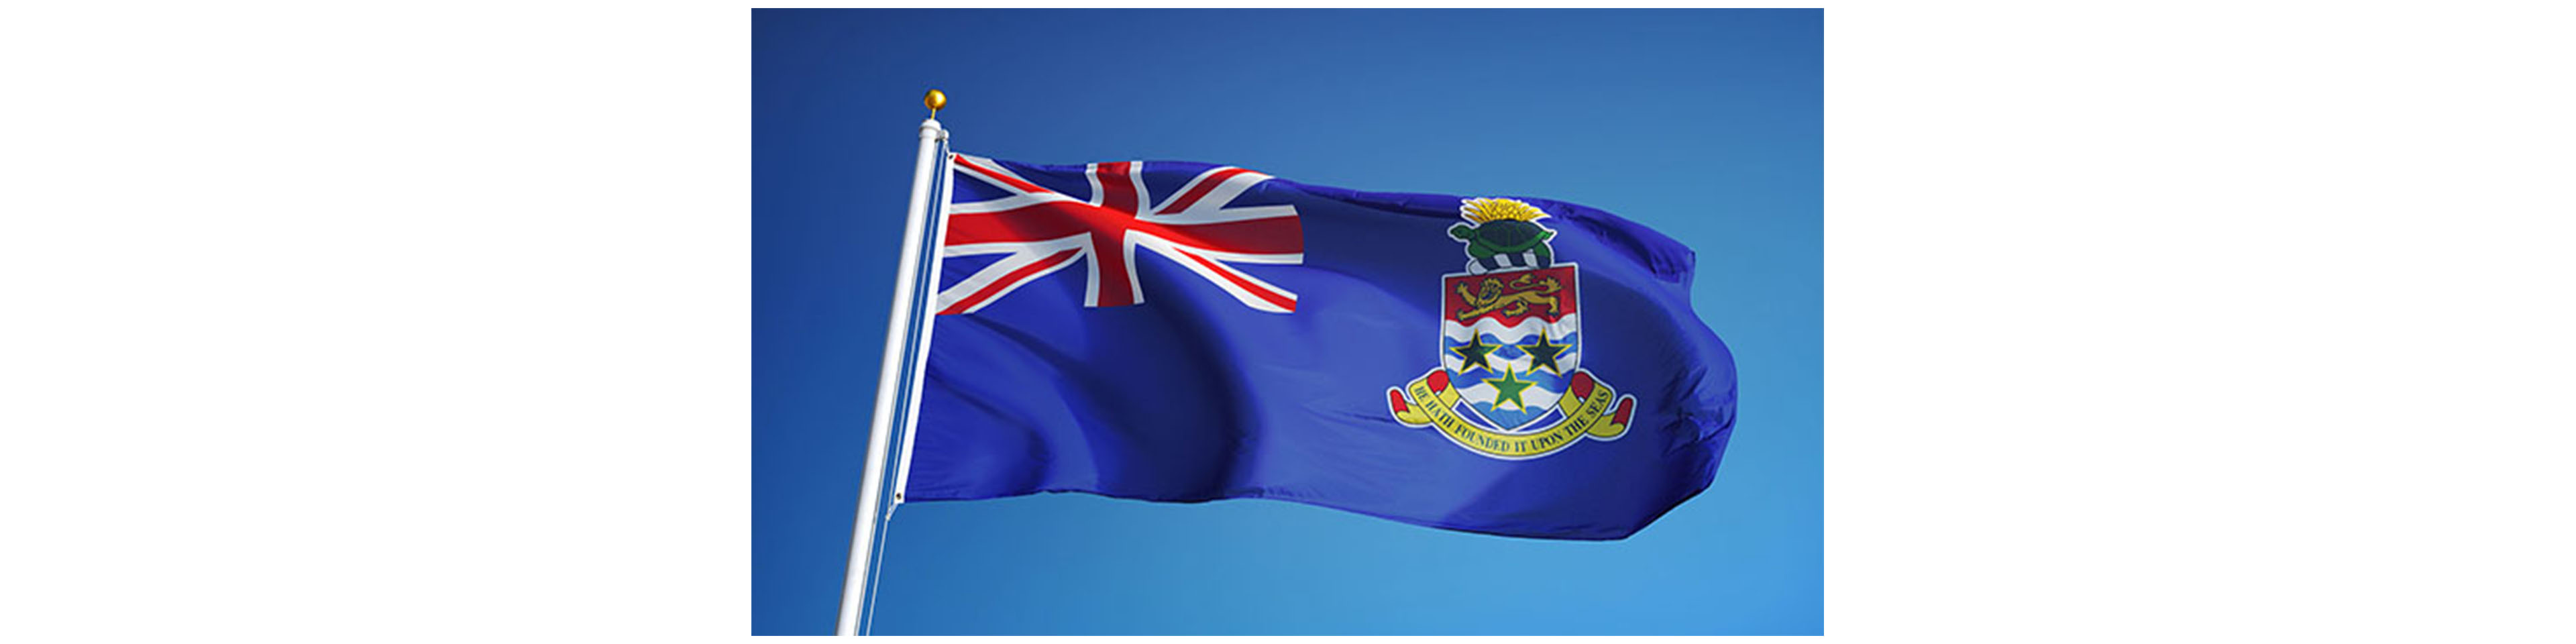 Economic Substance Requirements Now in Effect for the Cayman Islands